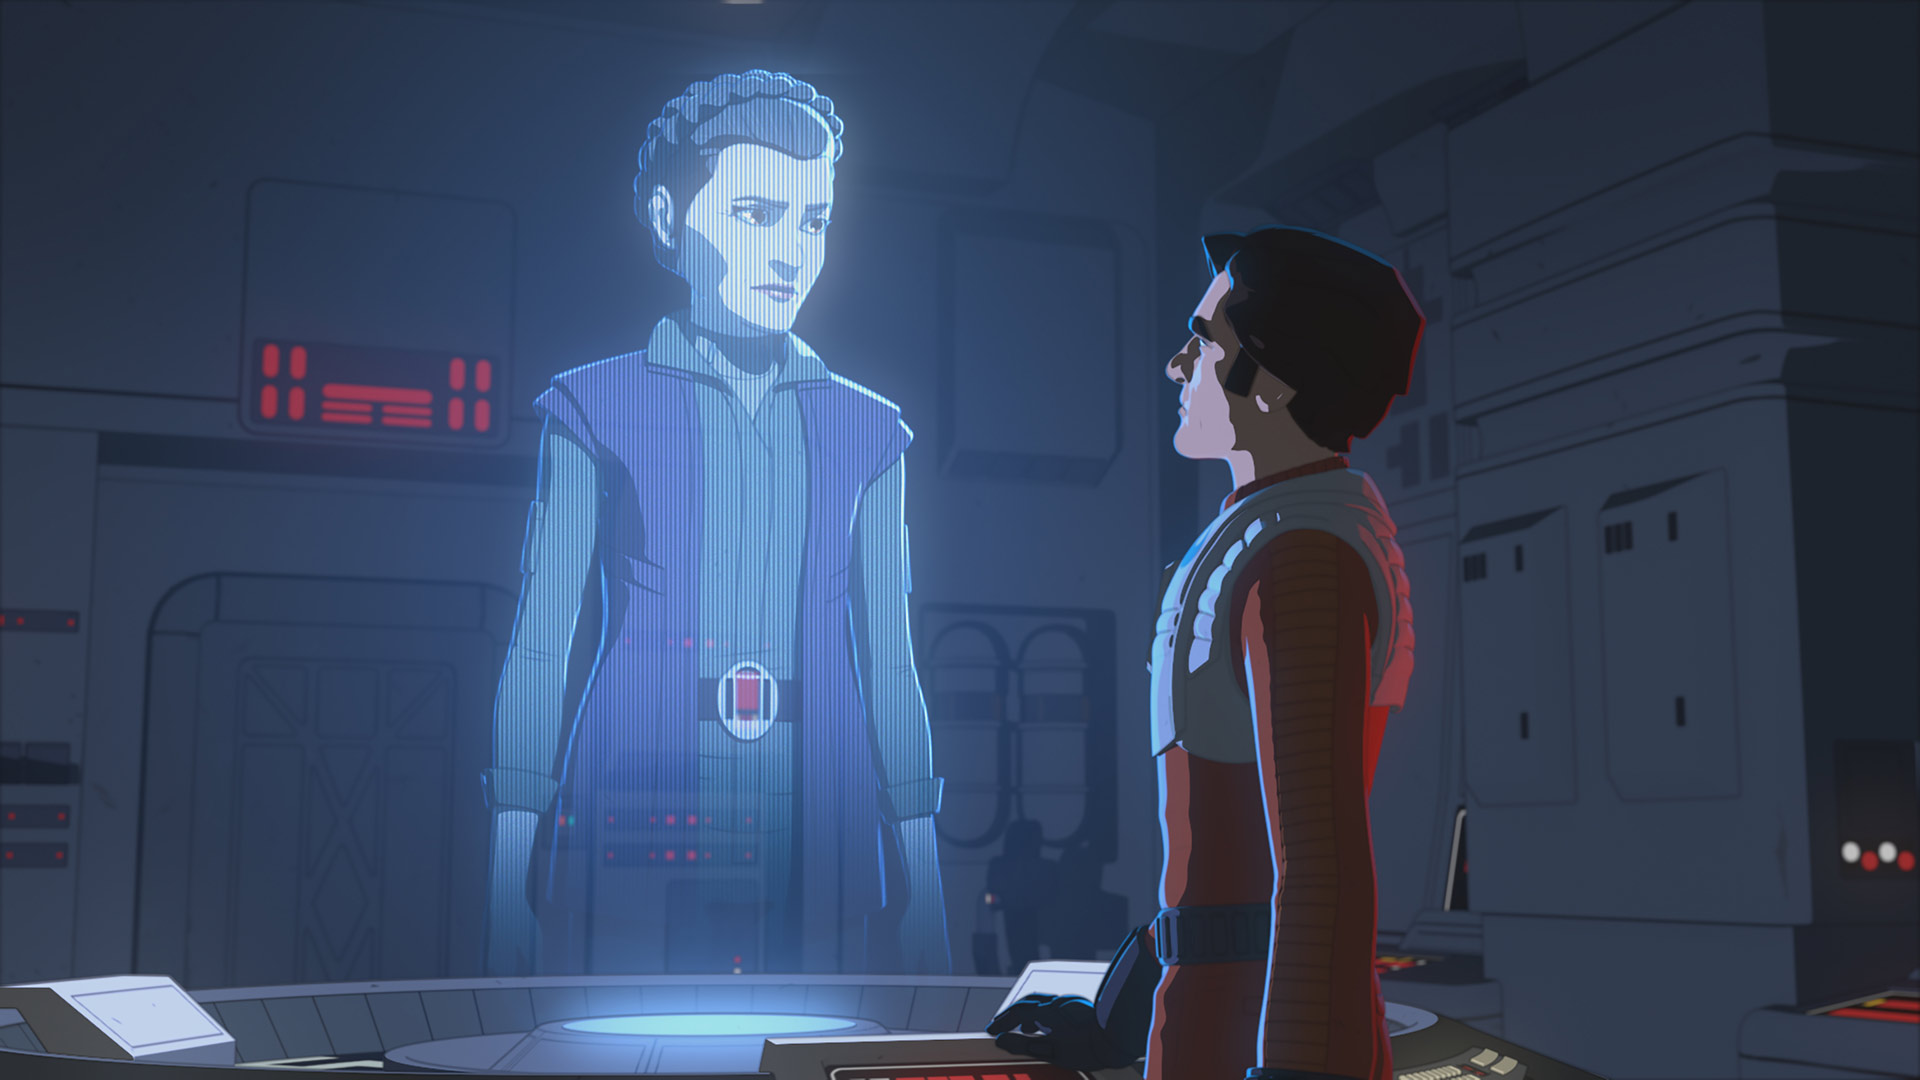 General Leia Organa and Poe Dameron in Star Wars Resistance.